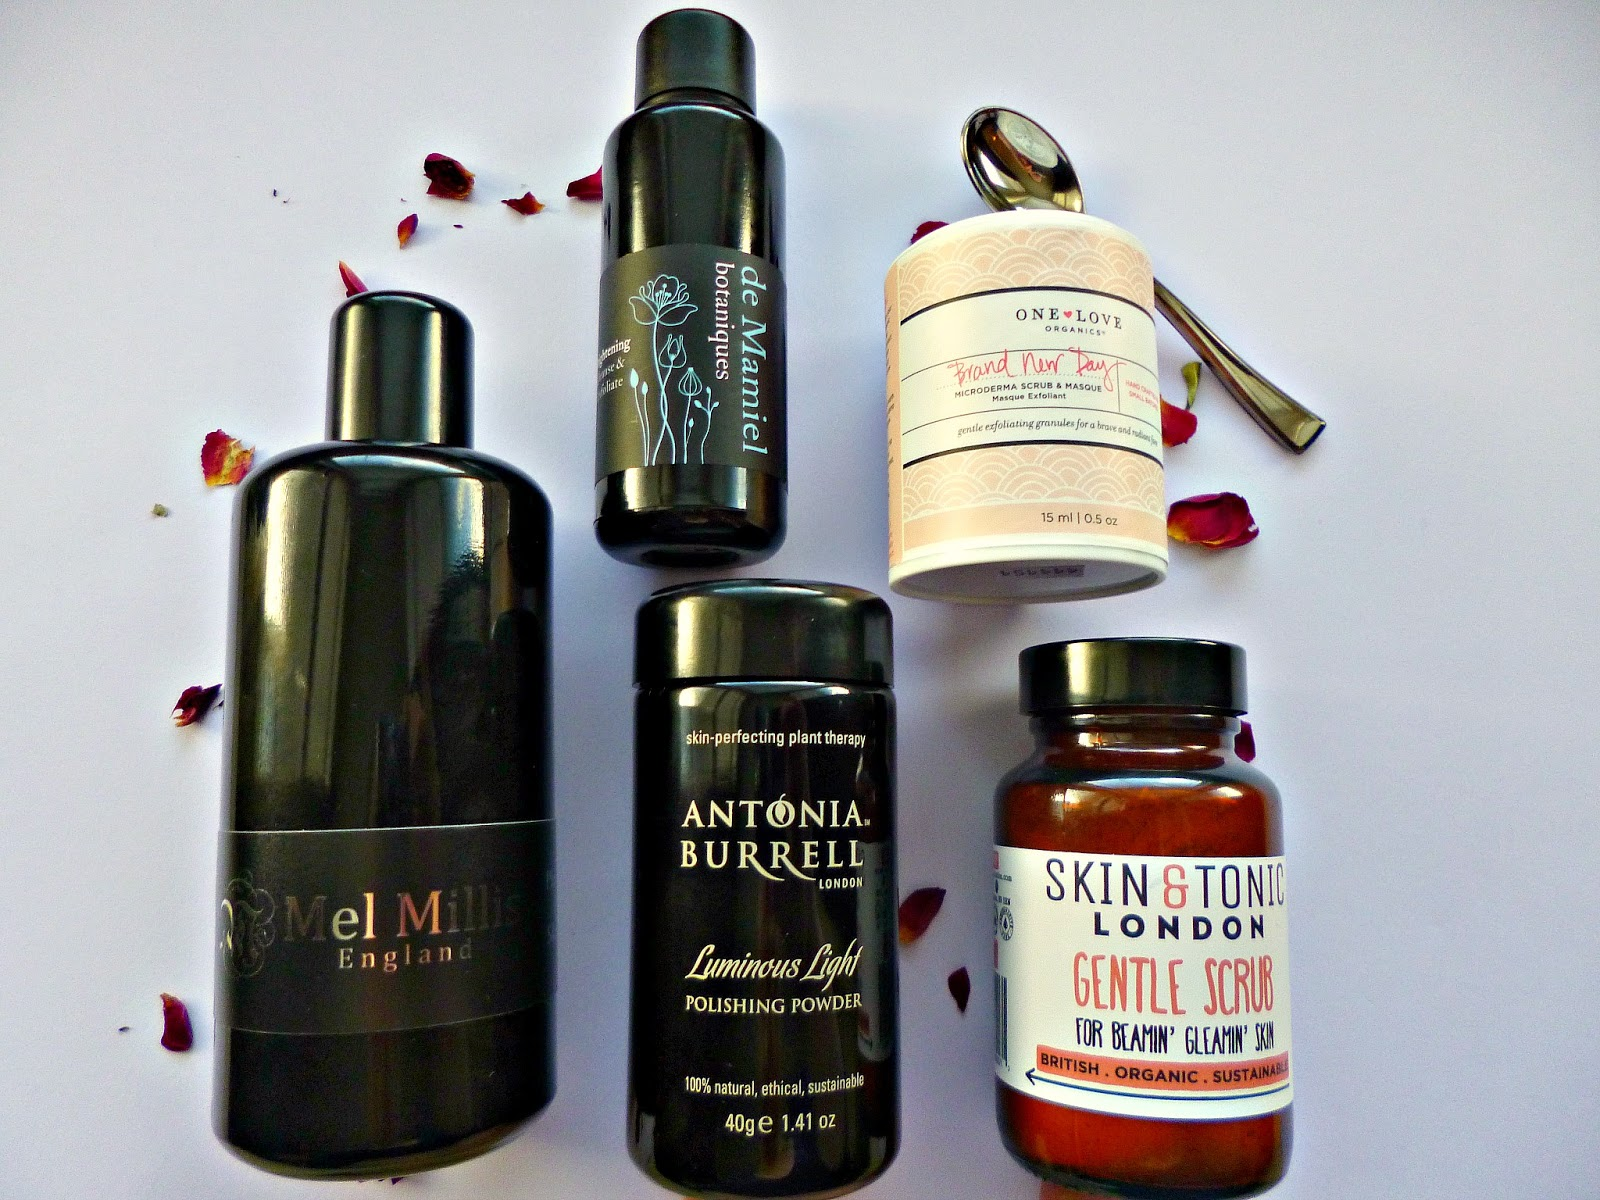 Current loves – Powder cleansers, exfoliators and masks